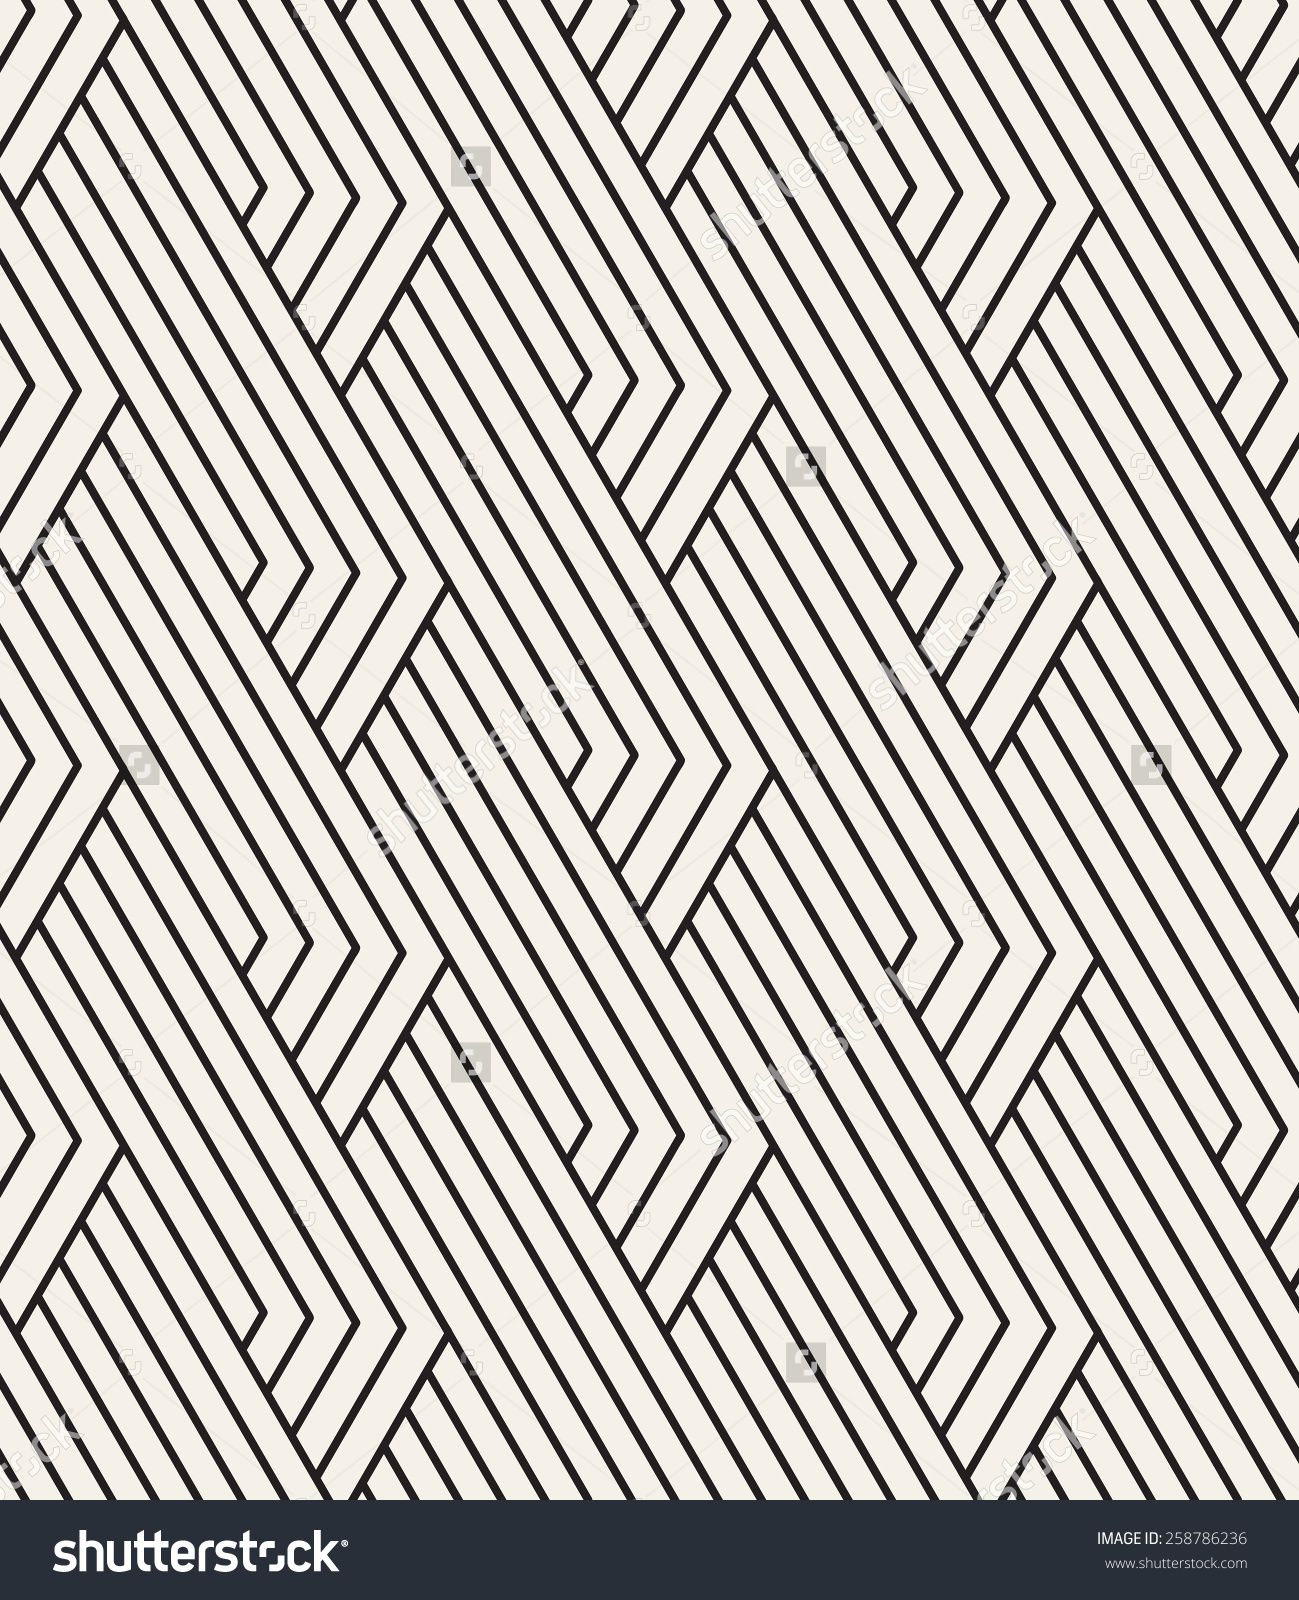 Vector Seamless Pattern. Linear Graphic Design. Decorative ...  |Linear Graphic Art